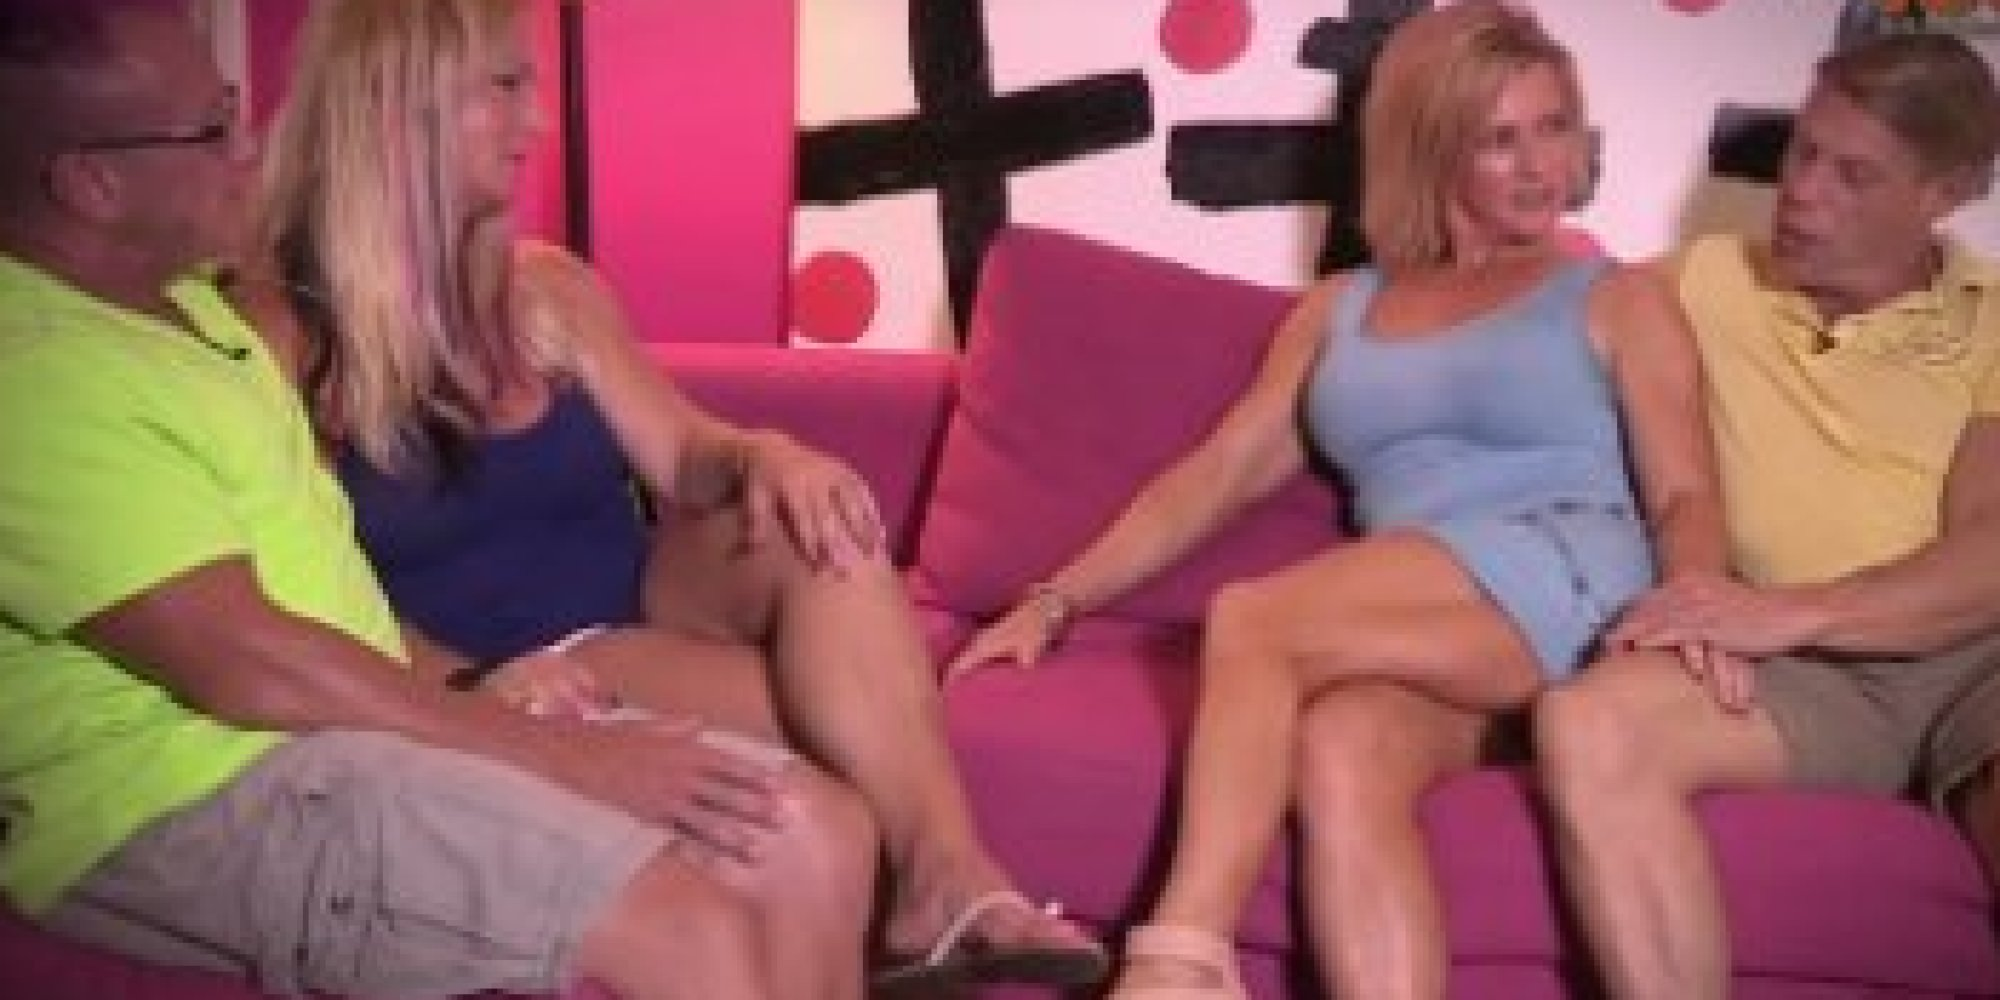 Sexy naked swapping couples watched this